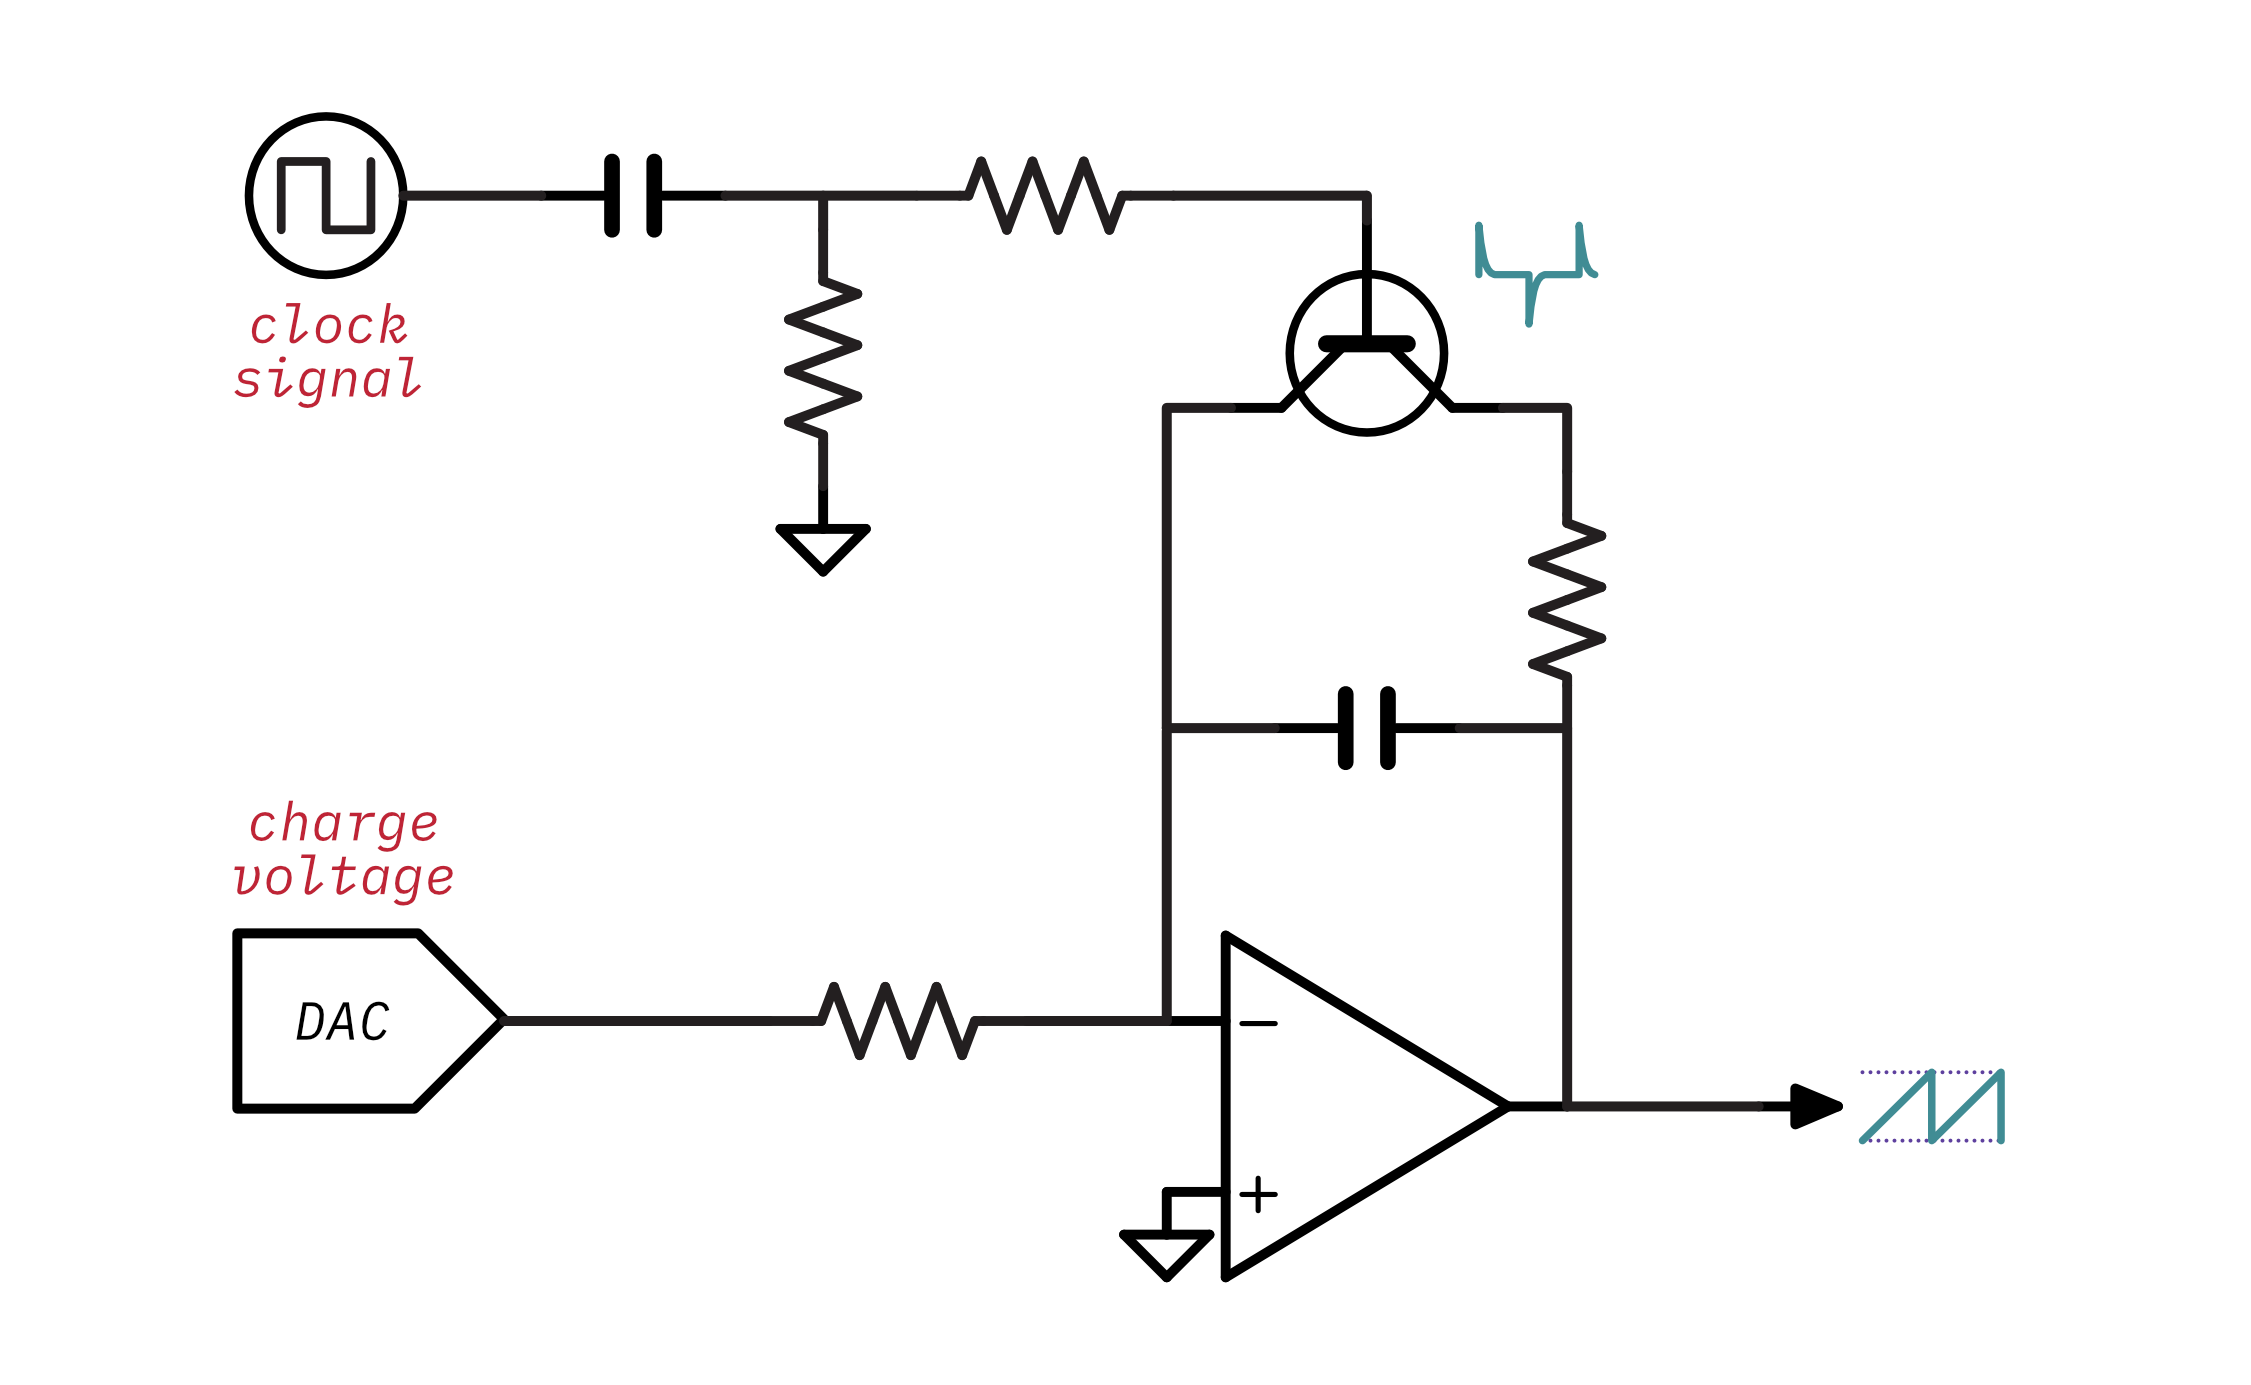 Schematic of a DCO with a DAC added